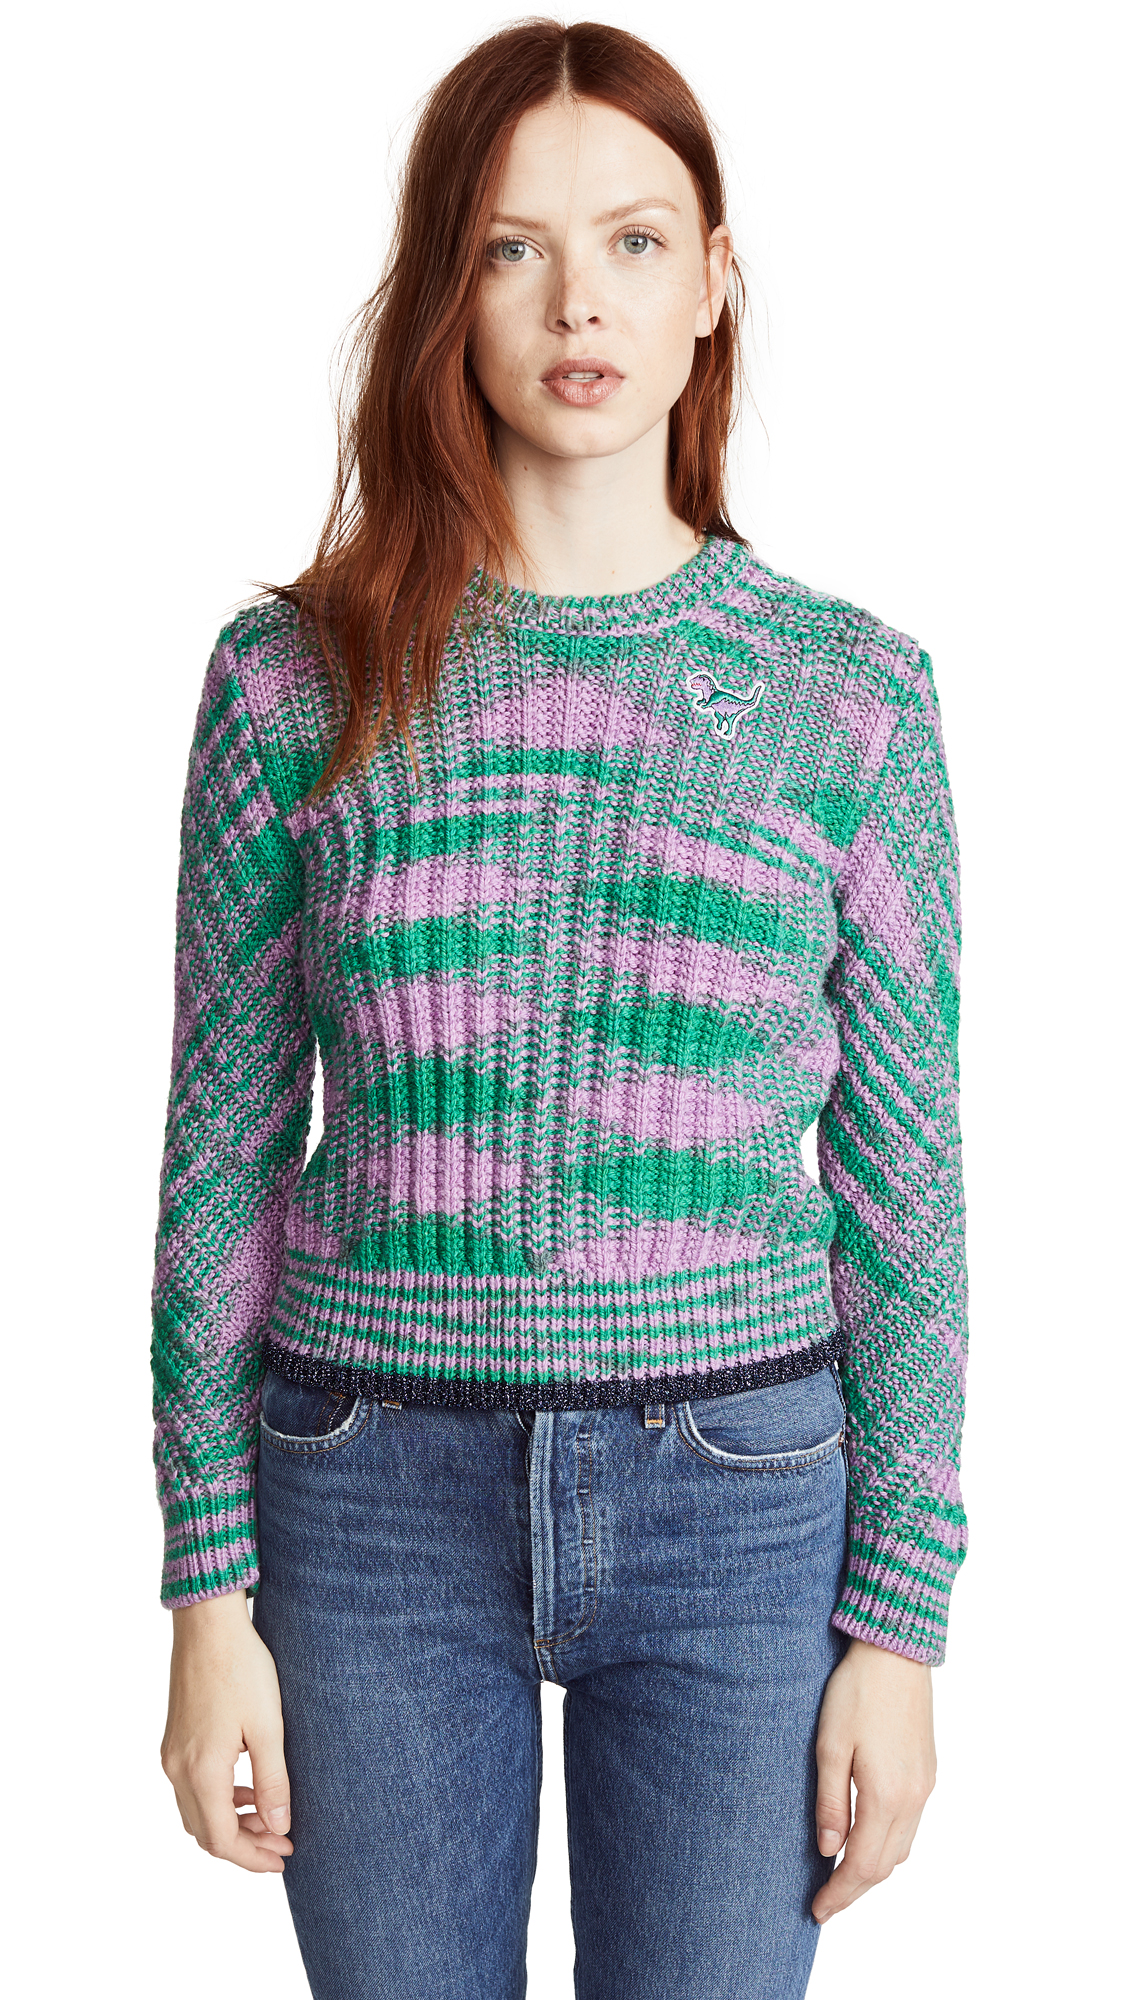 1941 Space Dye Crew Neck Sweater, Green/Lilac